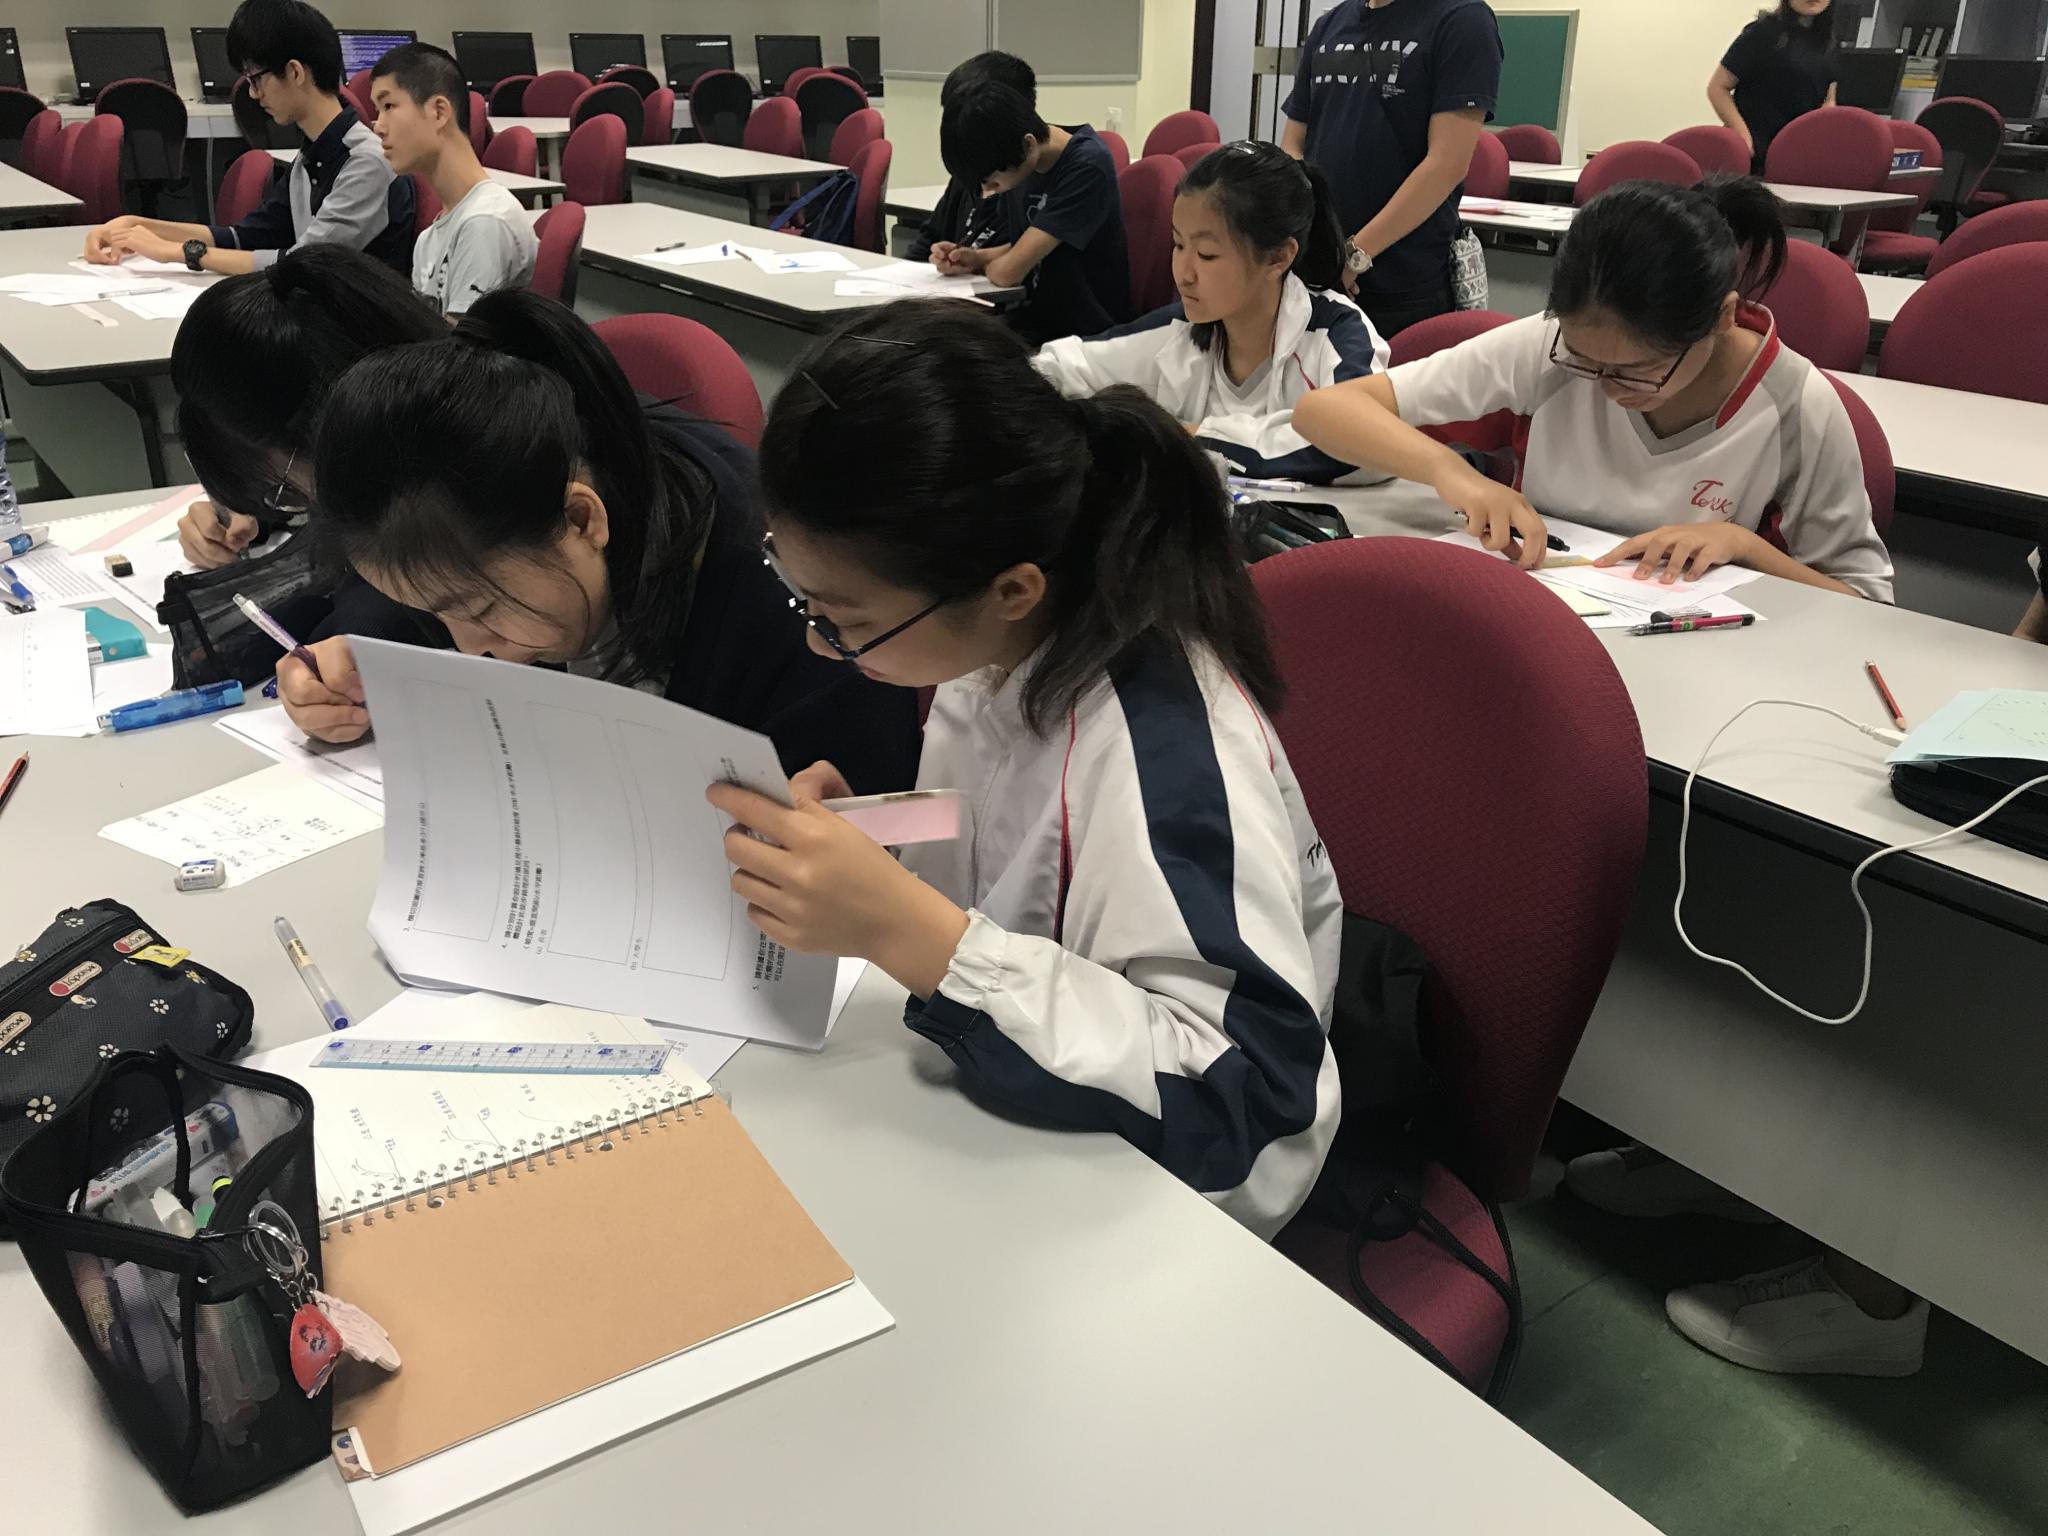 Students were working on the pre-test before the AR Sandbox lecture.